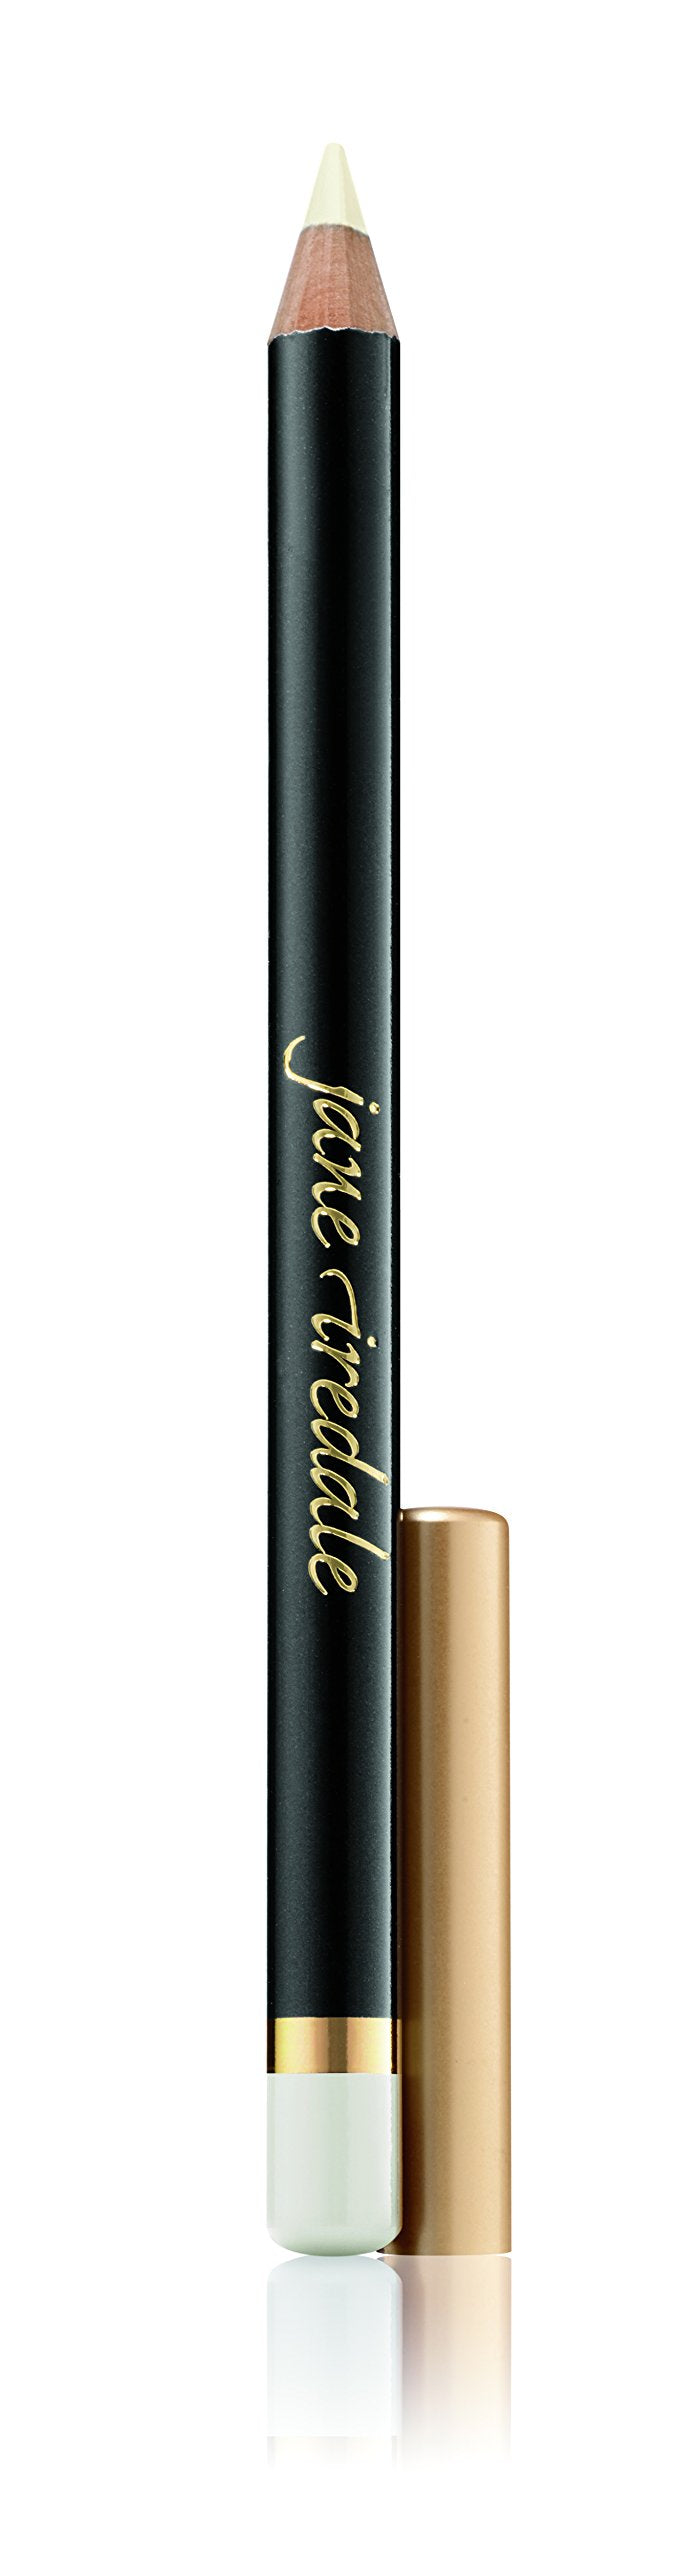 Jane Iredale Eye Pencil .04 oz - White